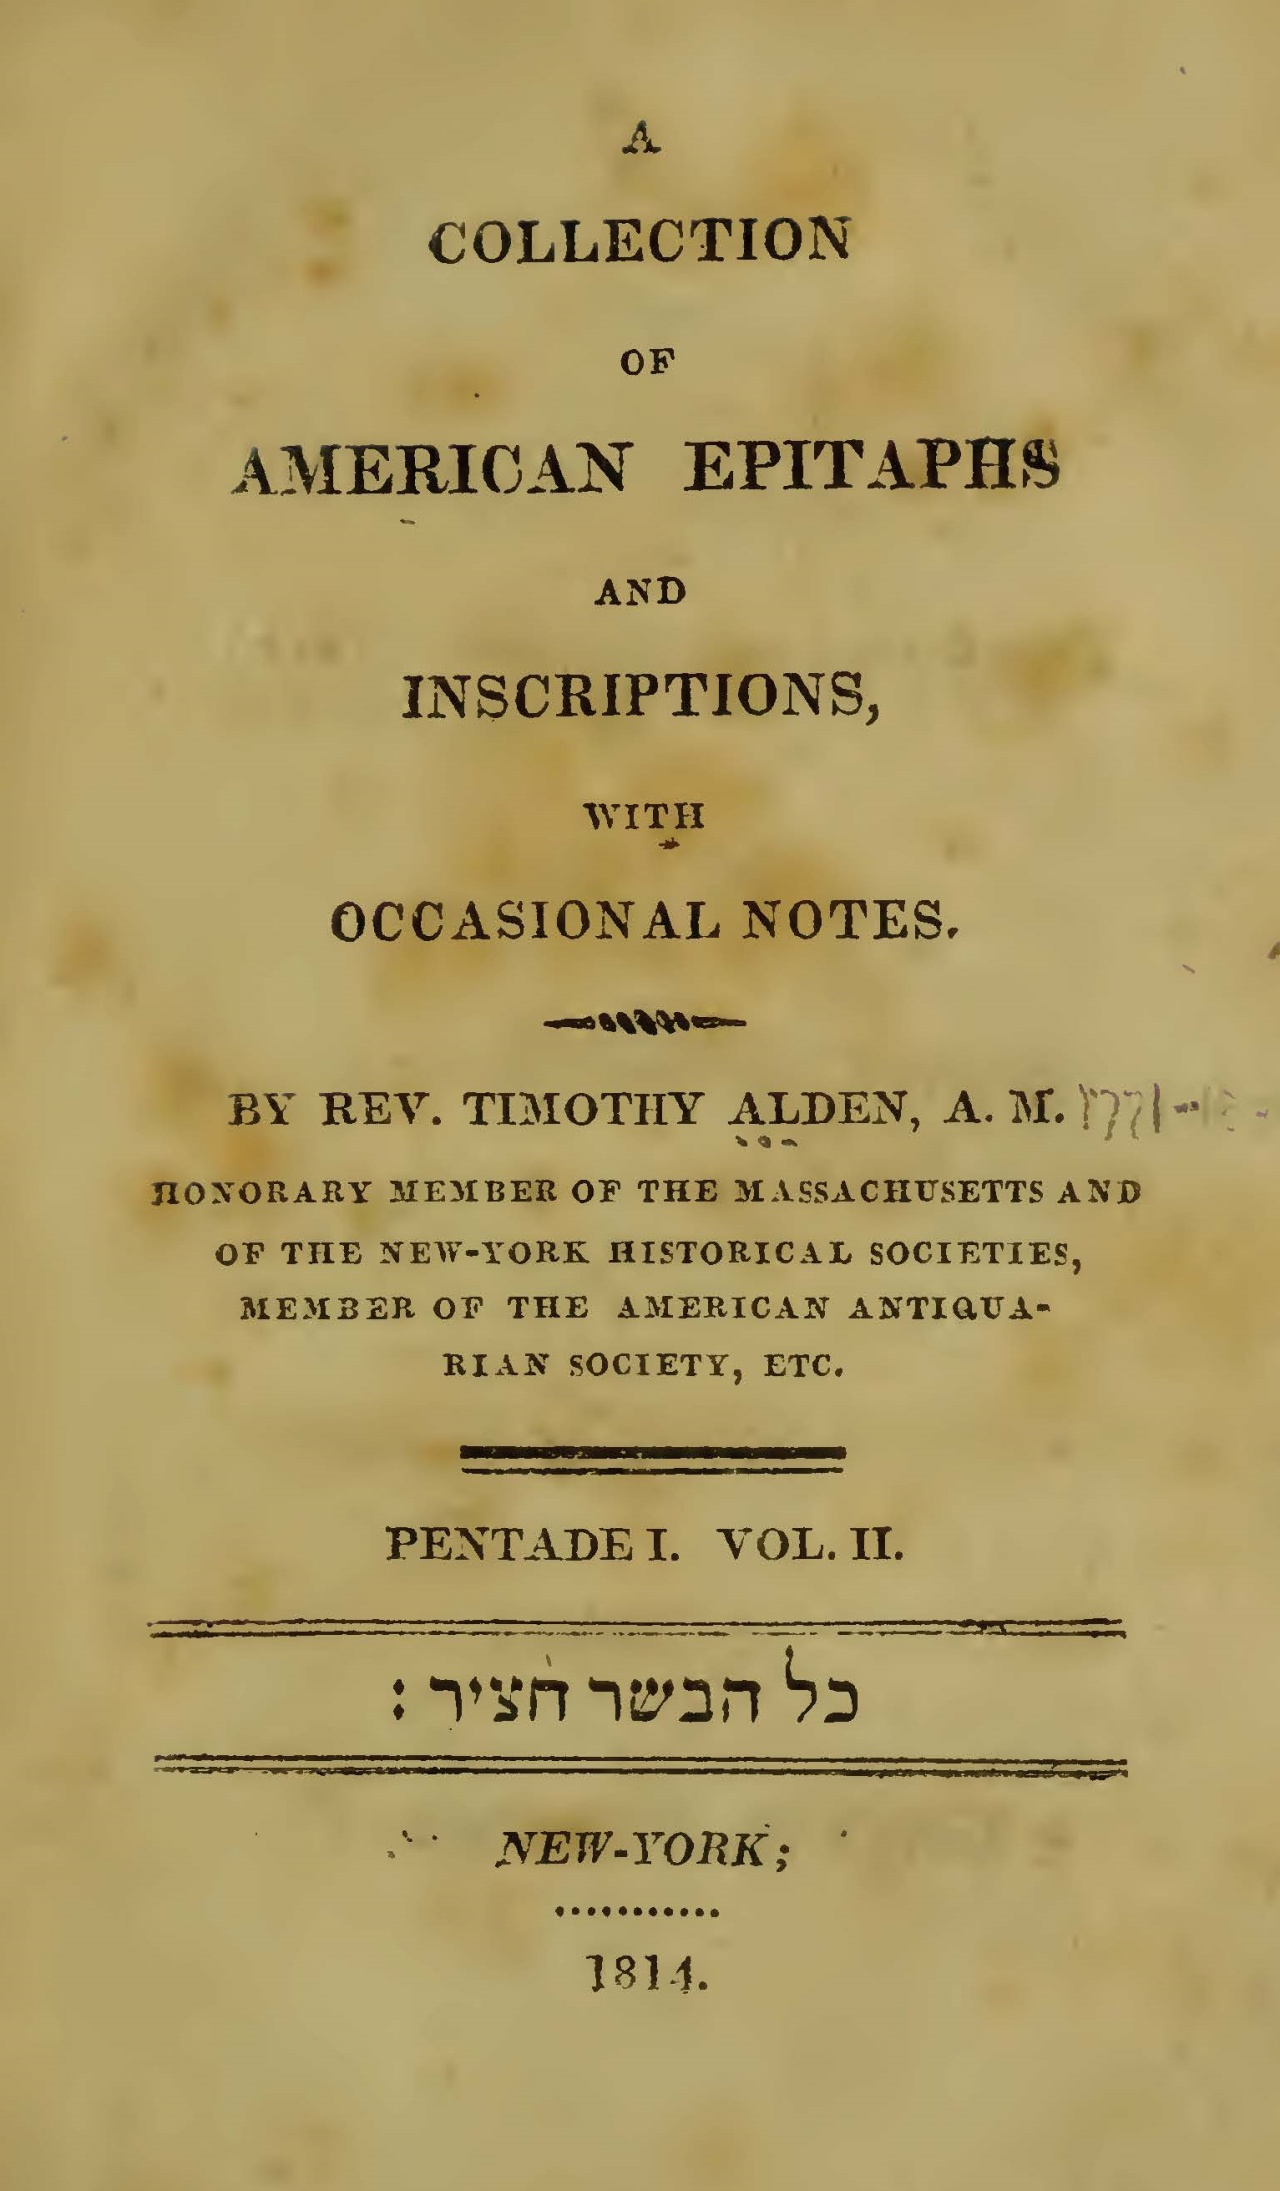 Alden, Jr., Timothy, A Collection of American Epitaphs and Inscriptions, Vol. 2 Title Page.jpg